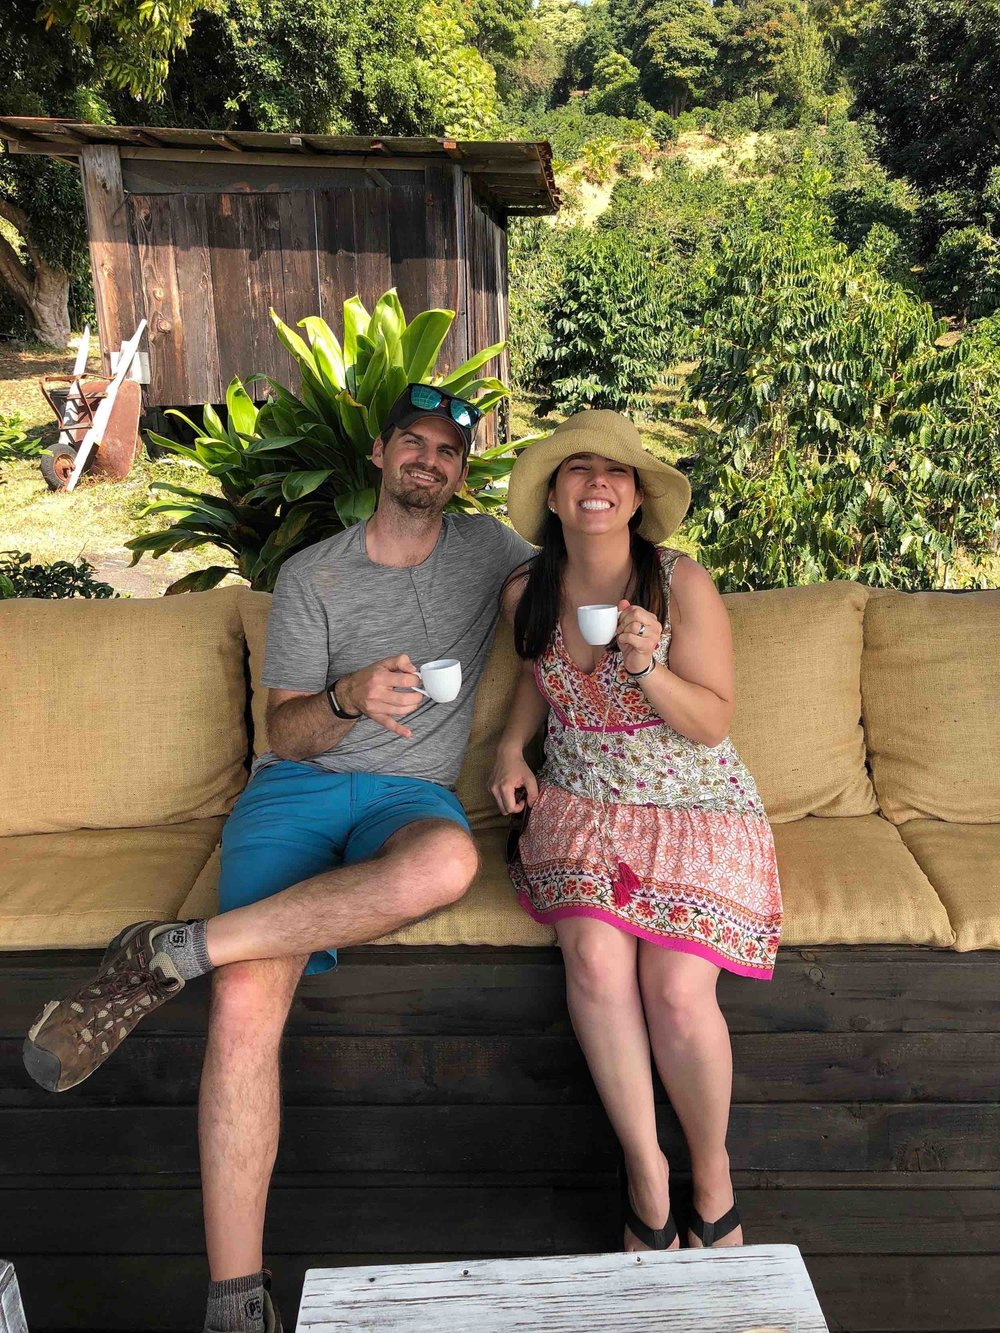 Couple enjoys Kona coffee tasting at Hala Tree in Kona, Hawaii.